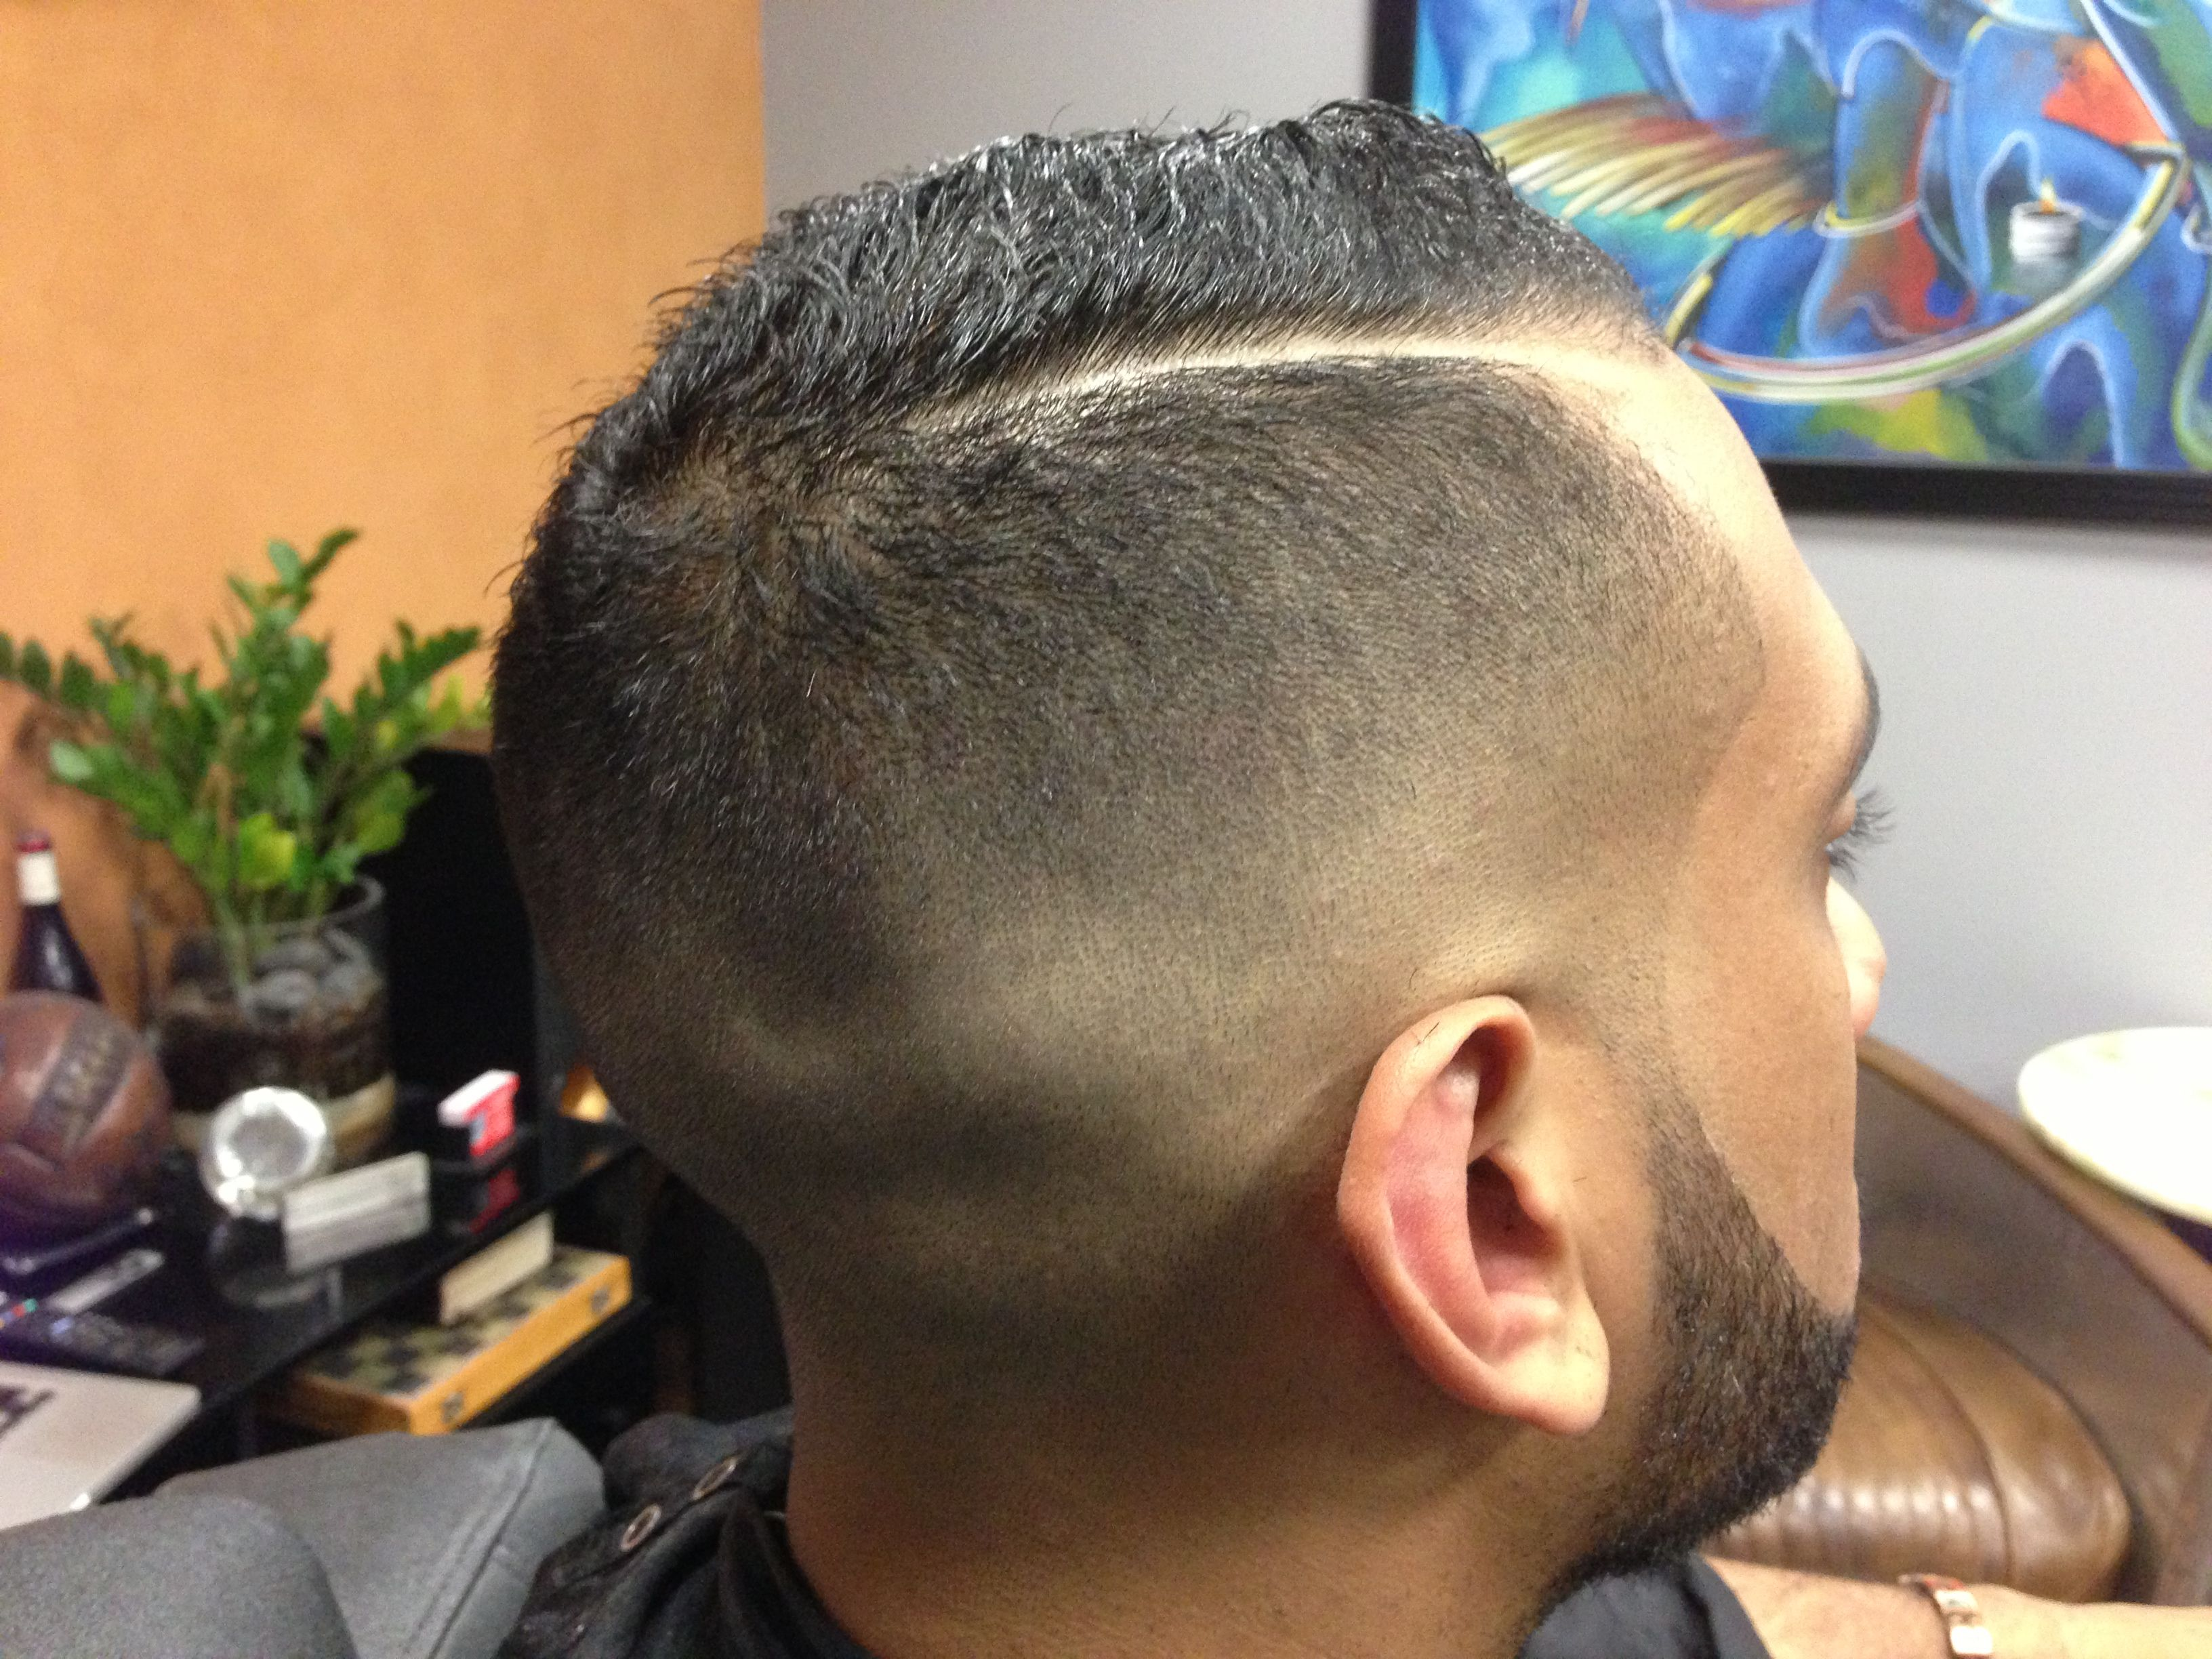 Combover Haircut By Bespoke Barbershop We Are The Only Upscale